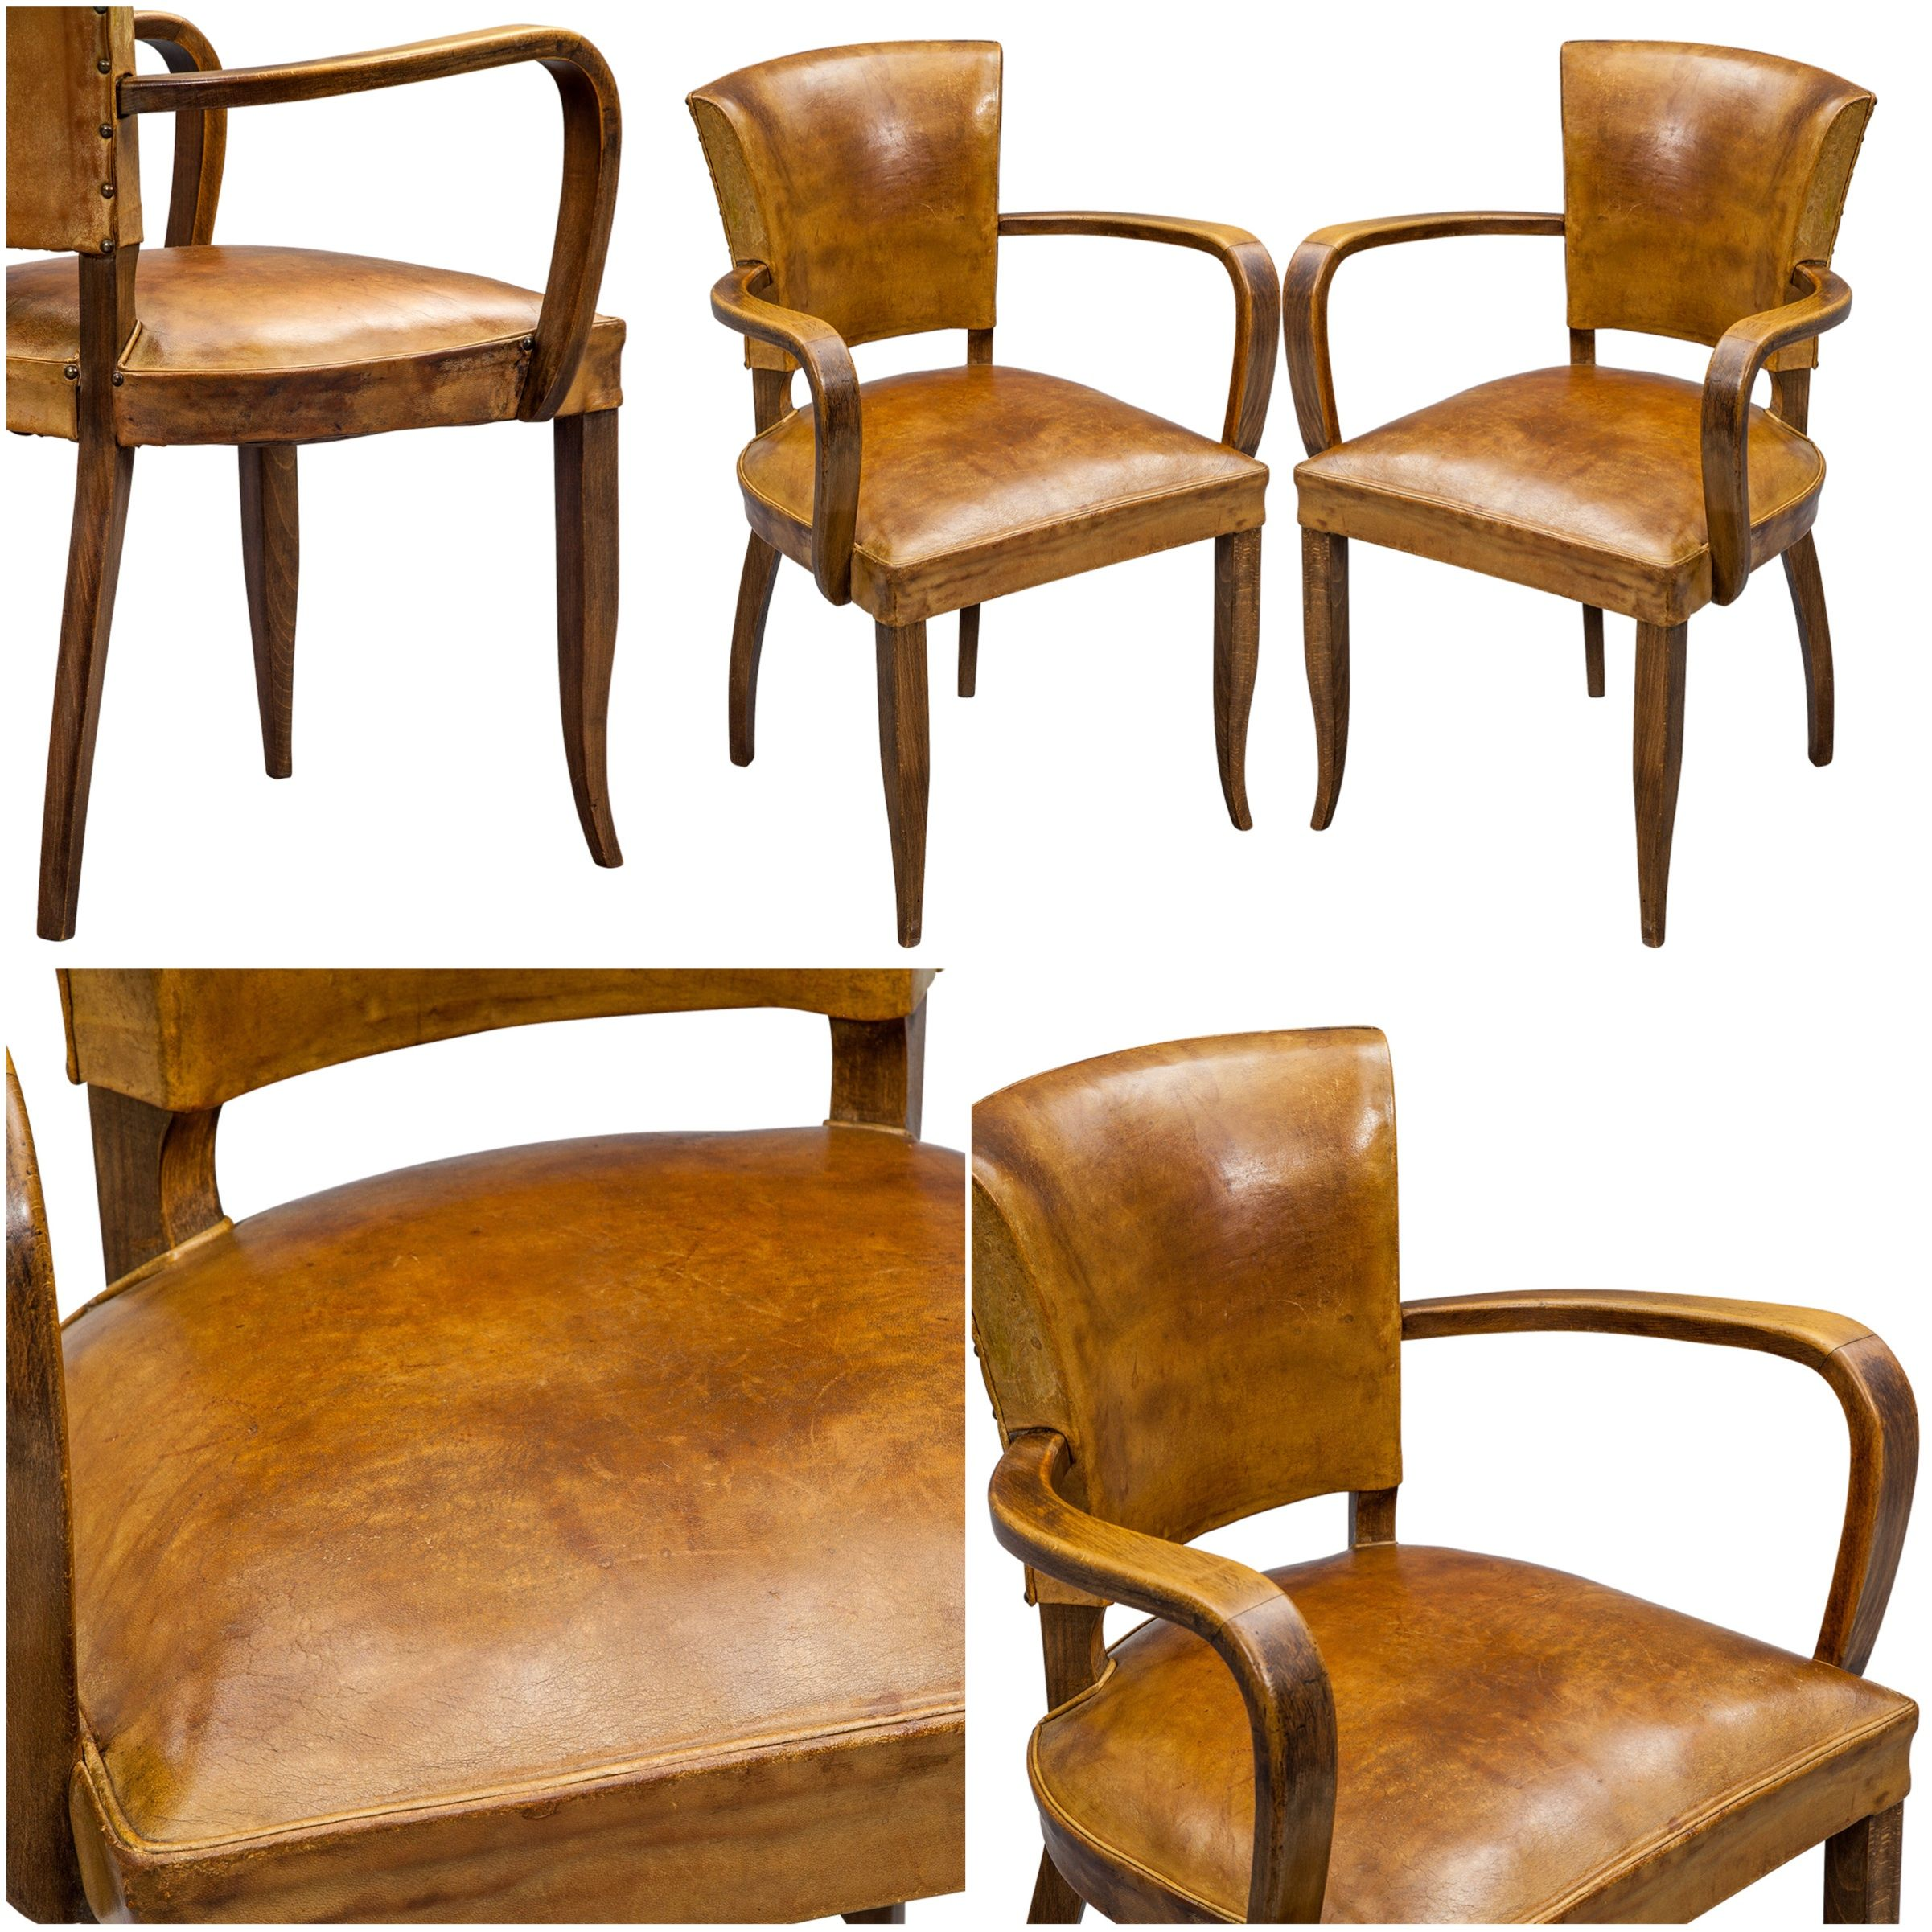 Pair Of French Leather Bridge Chairs Fauteuil Fauteuil Bridge Deco